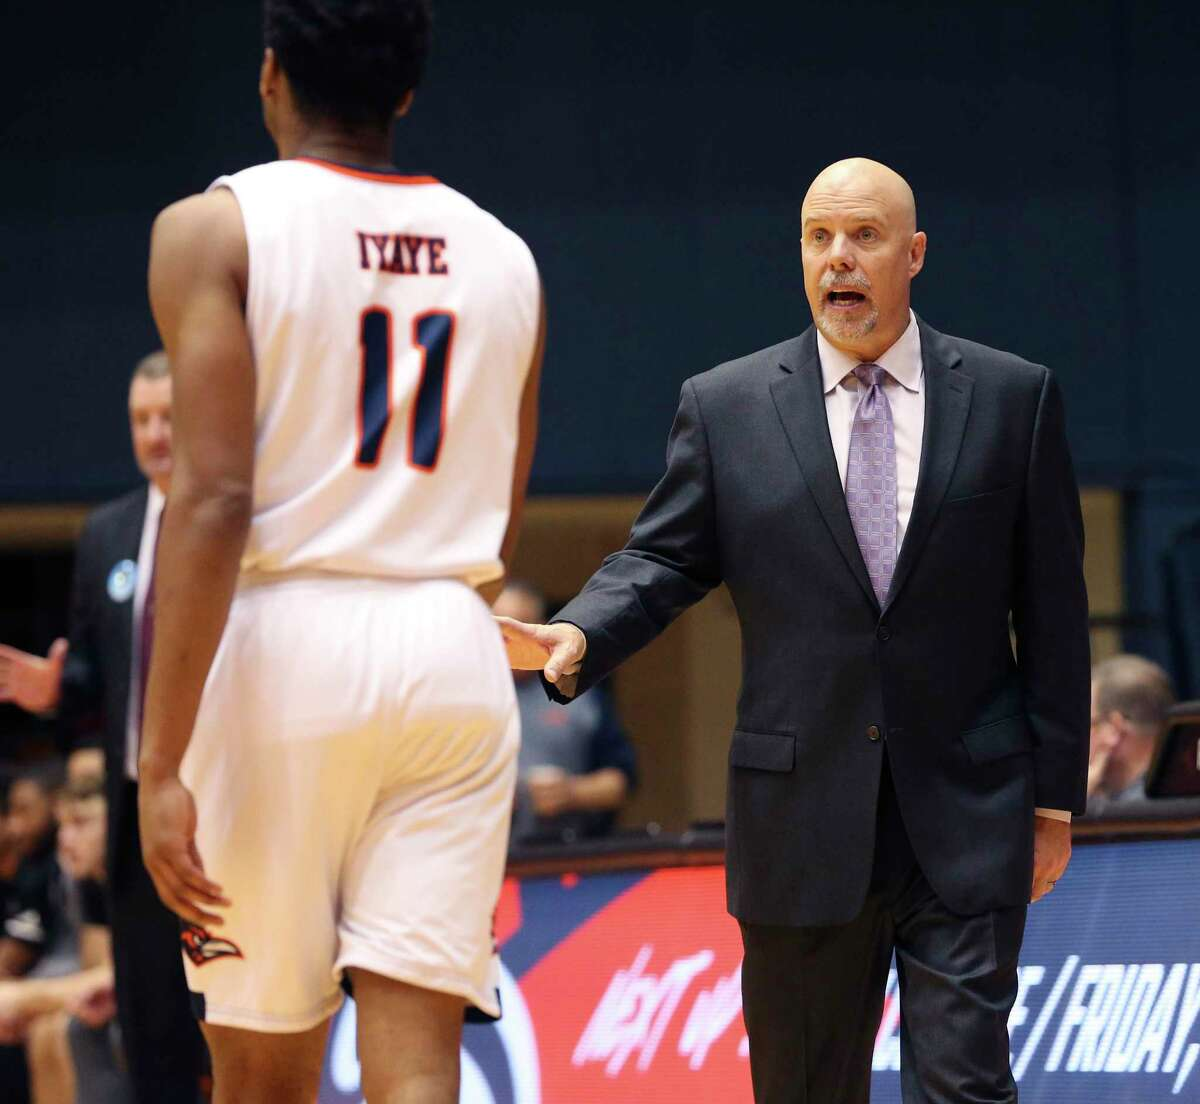 UTSA basketball coach Steve Henson talks with his player Adokiye Iyaye (11) during the game against Texas A&M International in an exhibition game on Wednesday, Oct. 30, 2019 at the Convocation Center. (Kin Man Hui/San Antonio Express-News)